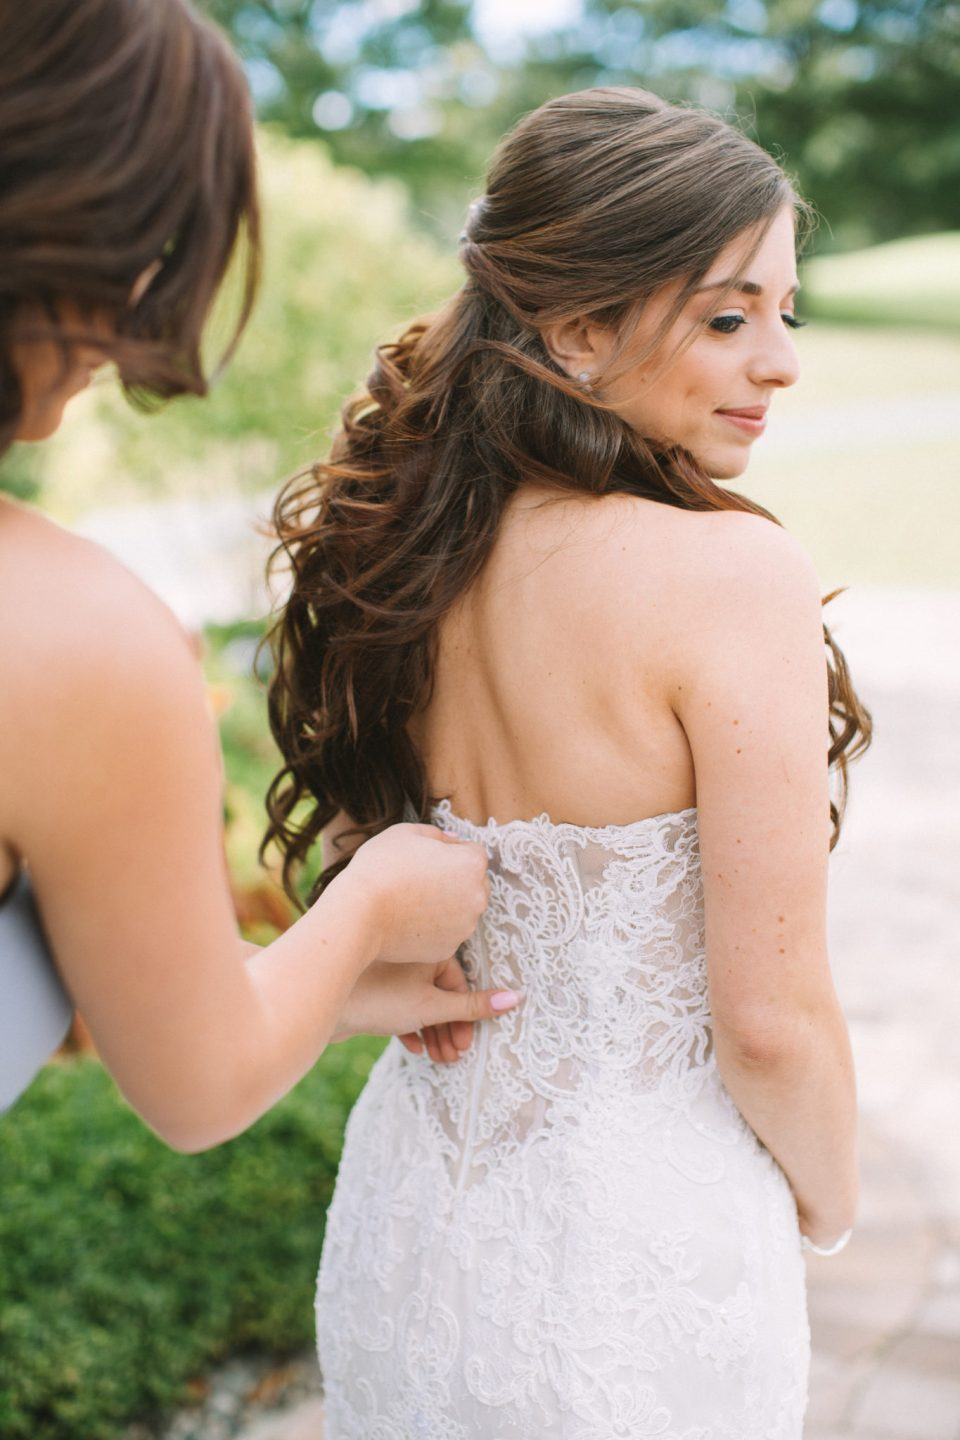 wedding dress prep photographed by Ashley Mac Photographs